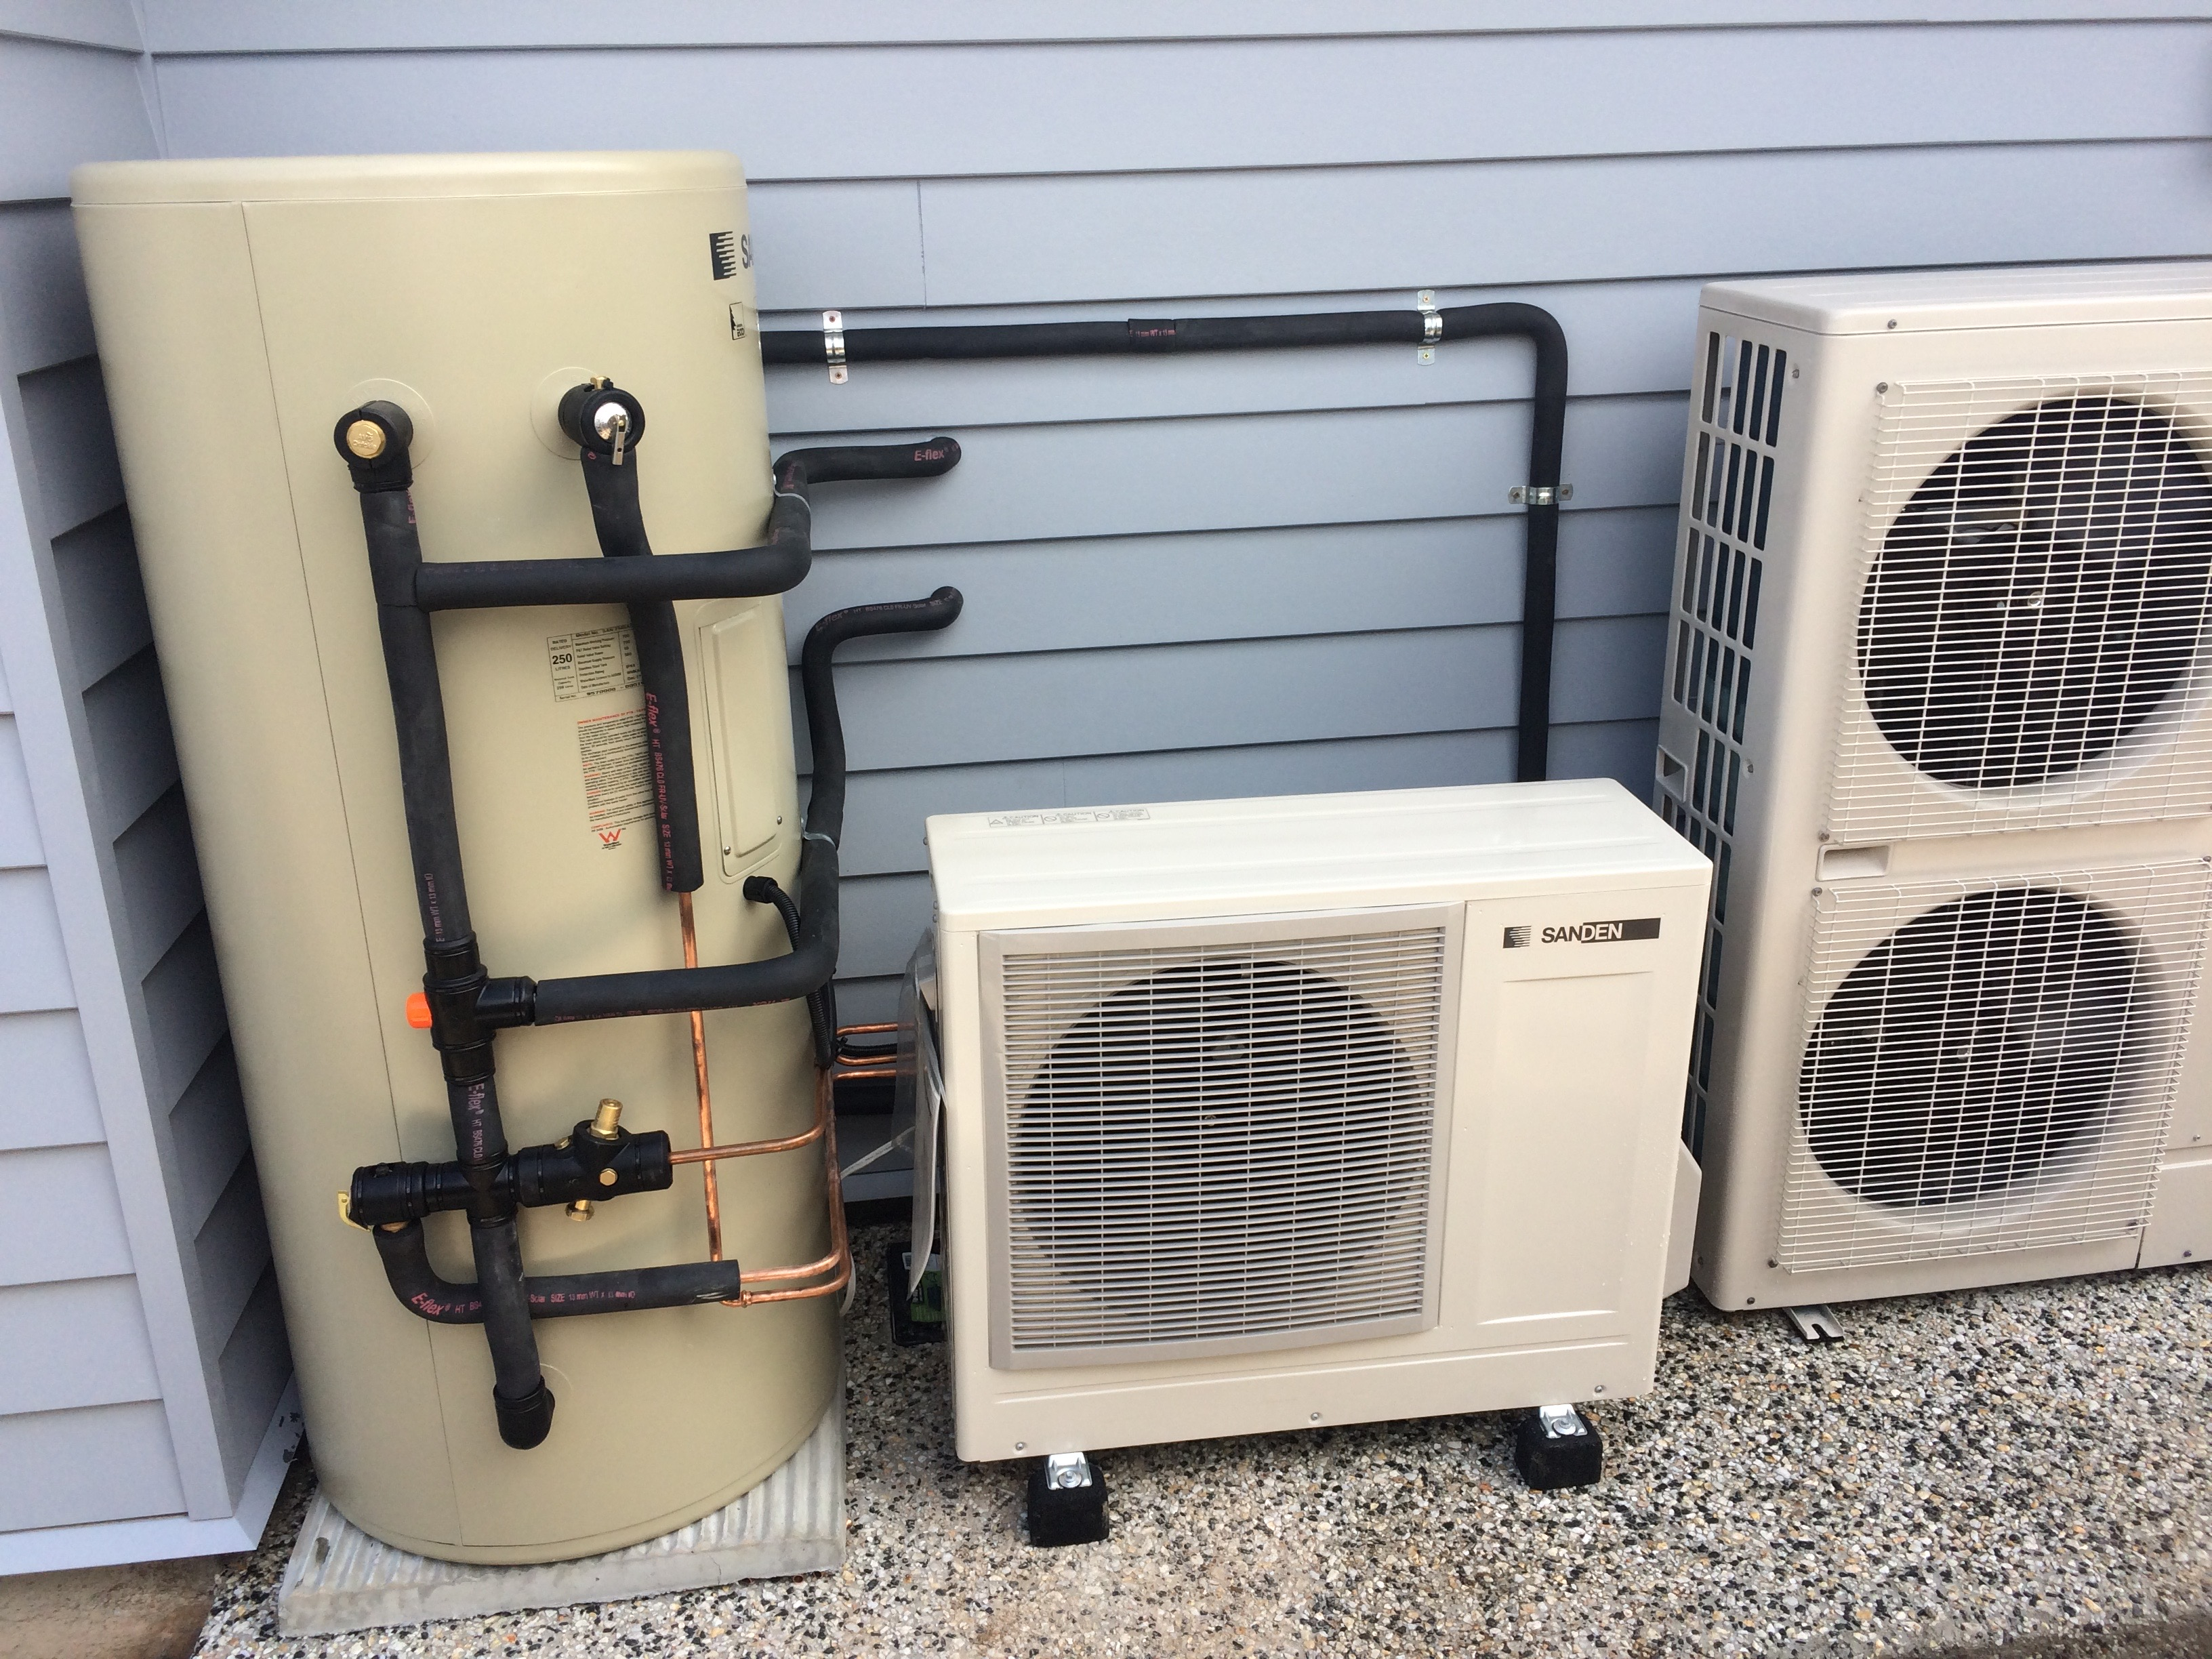 Hot Water Repairs Expert Pathfinder Plumbing choose us as your hot water heat pump installer.  Brisbane hot water system replacement After a top price for a new hot water system replacement .